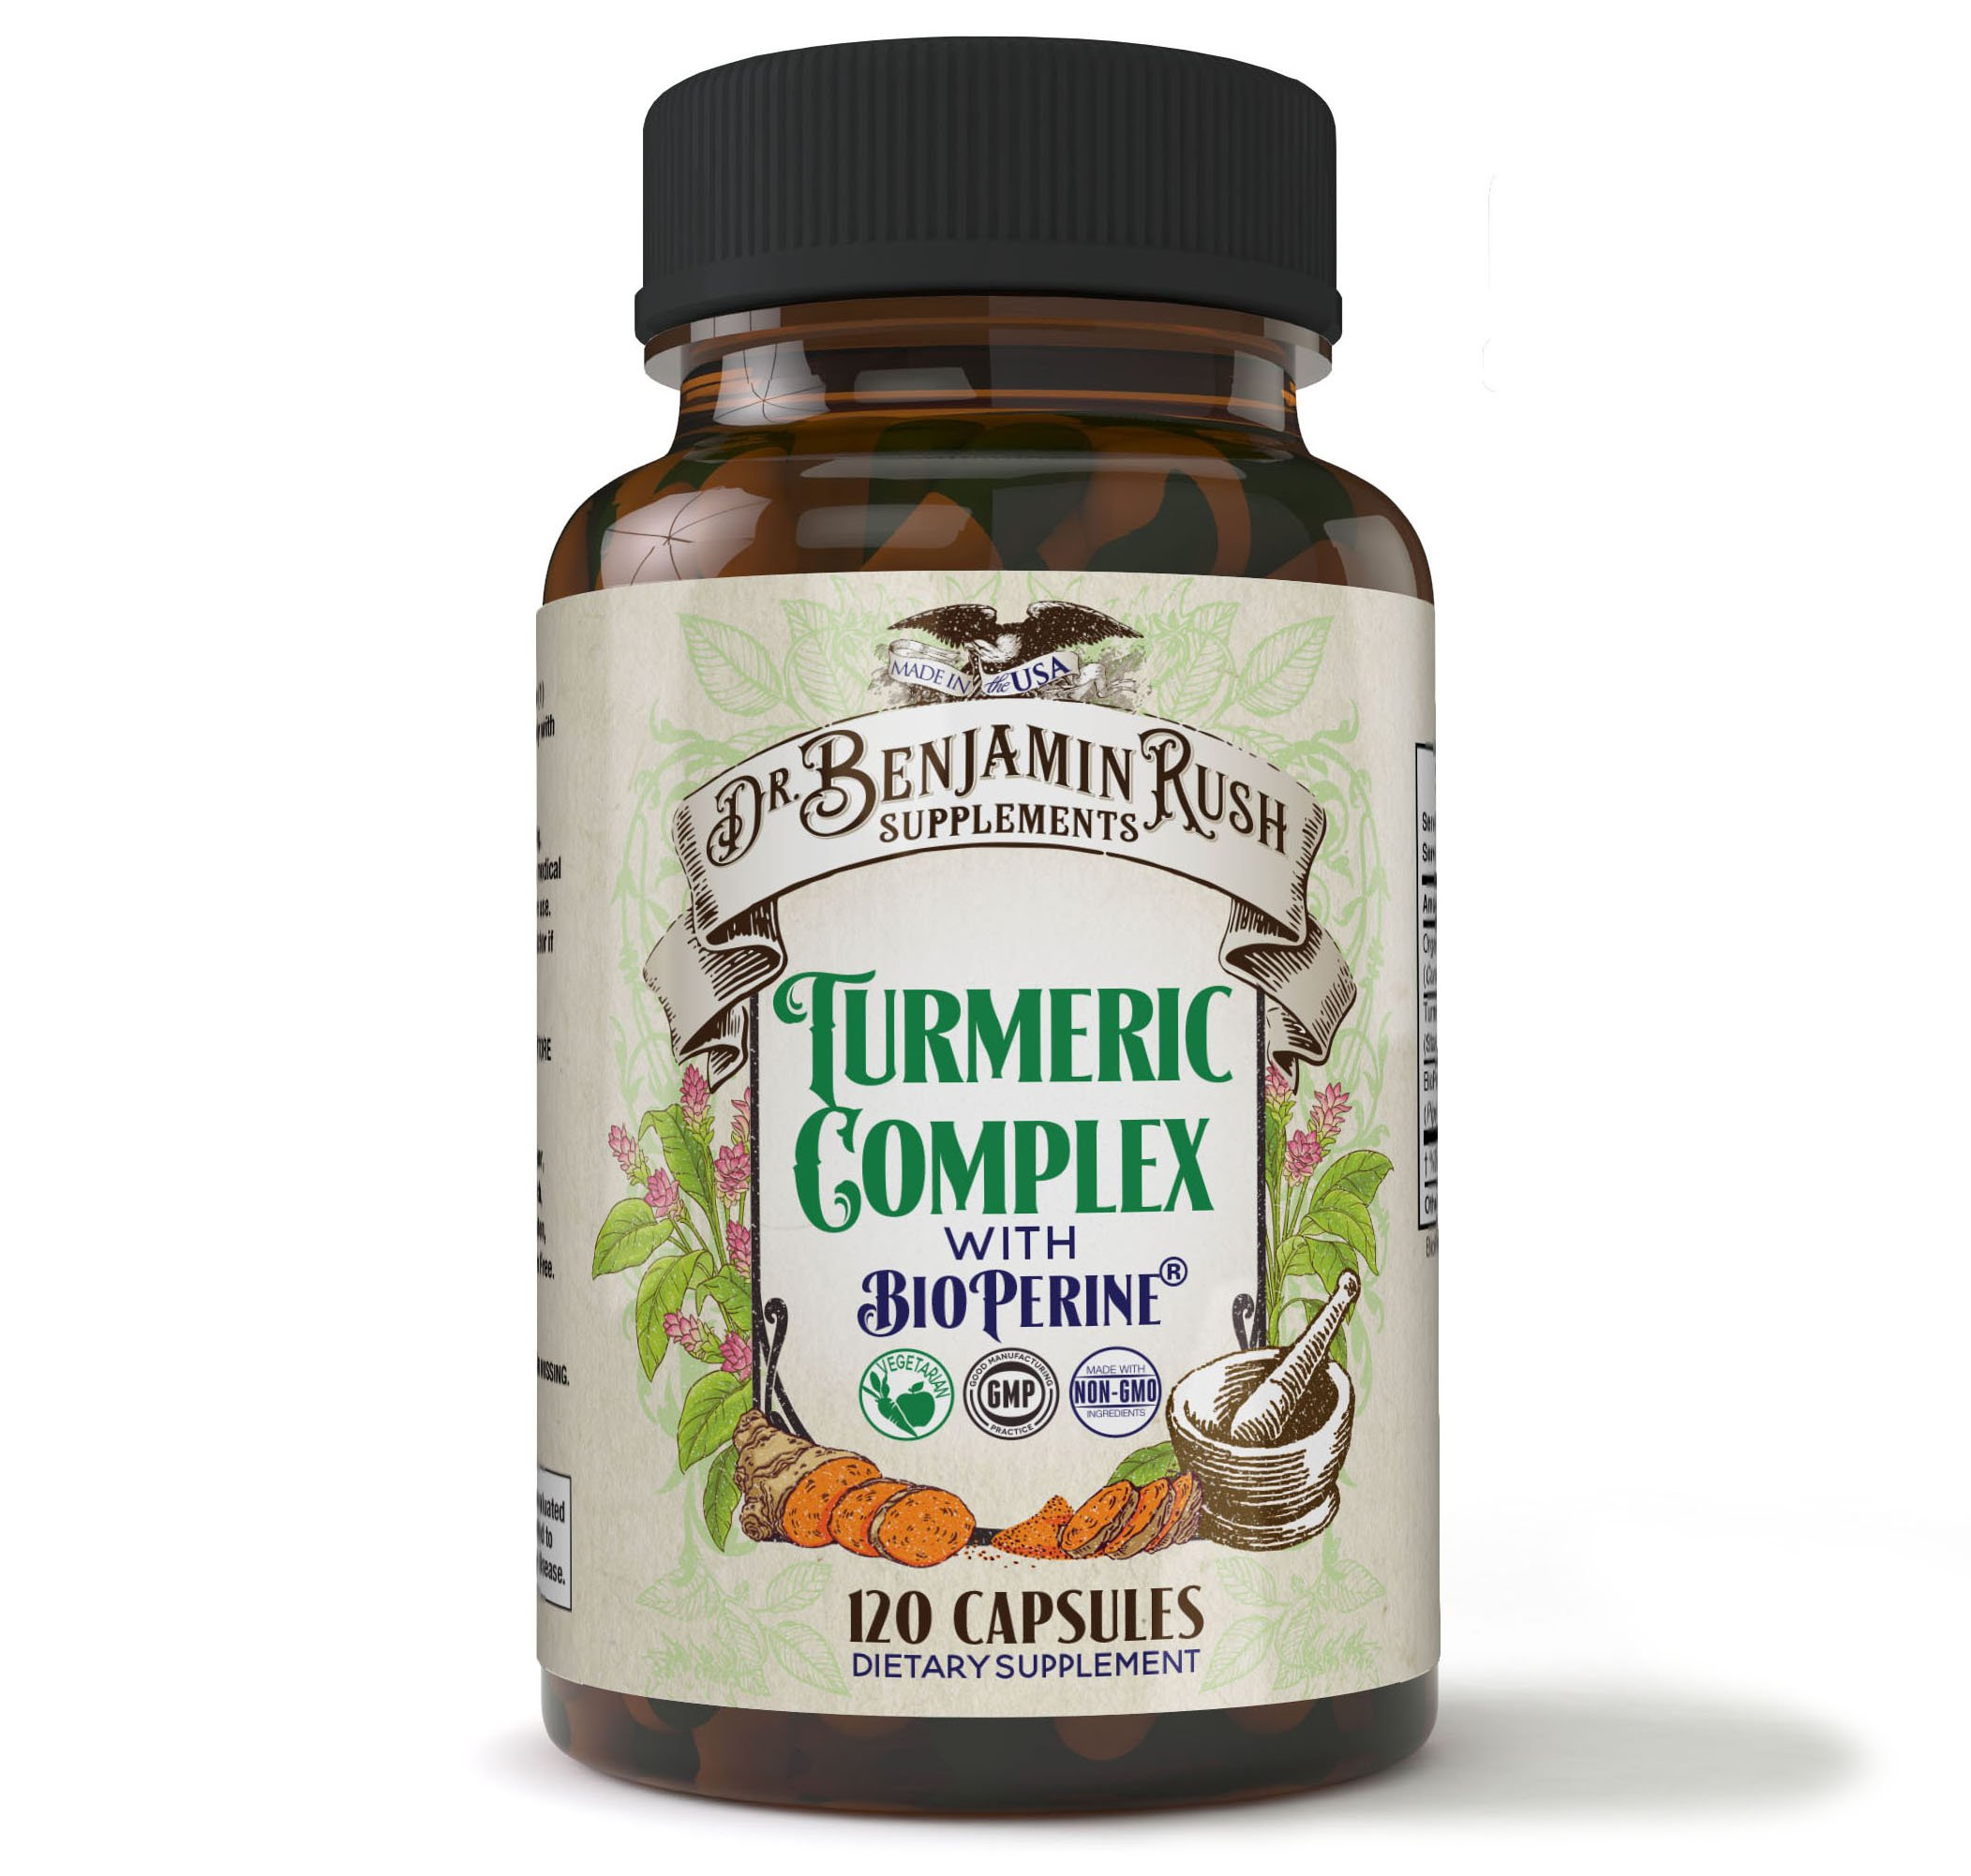 Dr. Benjamin Rush Turmeric Curcumin with Bioperine for Max Absorption. 95% Standardized Curcuminoids Organic Extract 120 Capsules! NON-GMO Black Pepper Pain Relief & Joint Support. Gluten and Soy Free